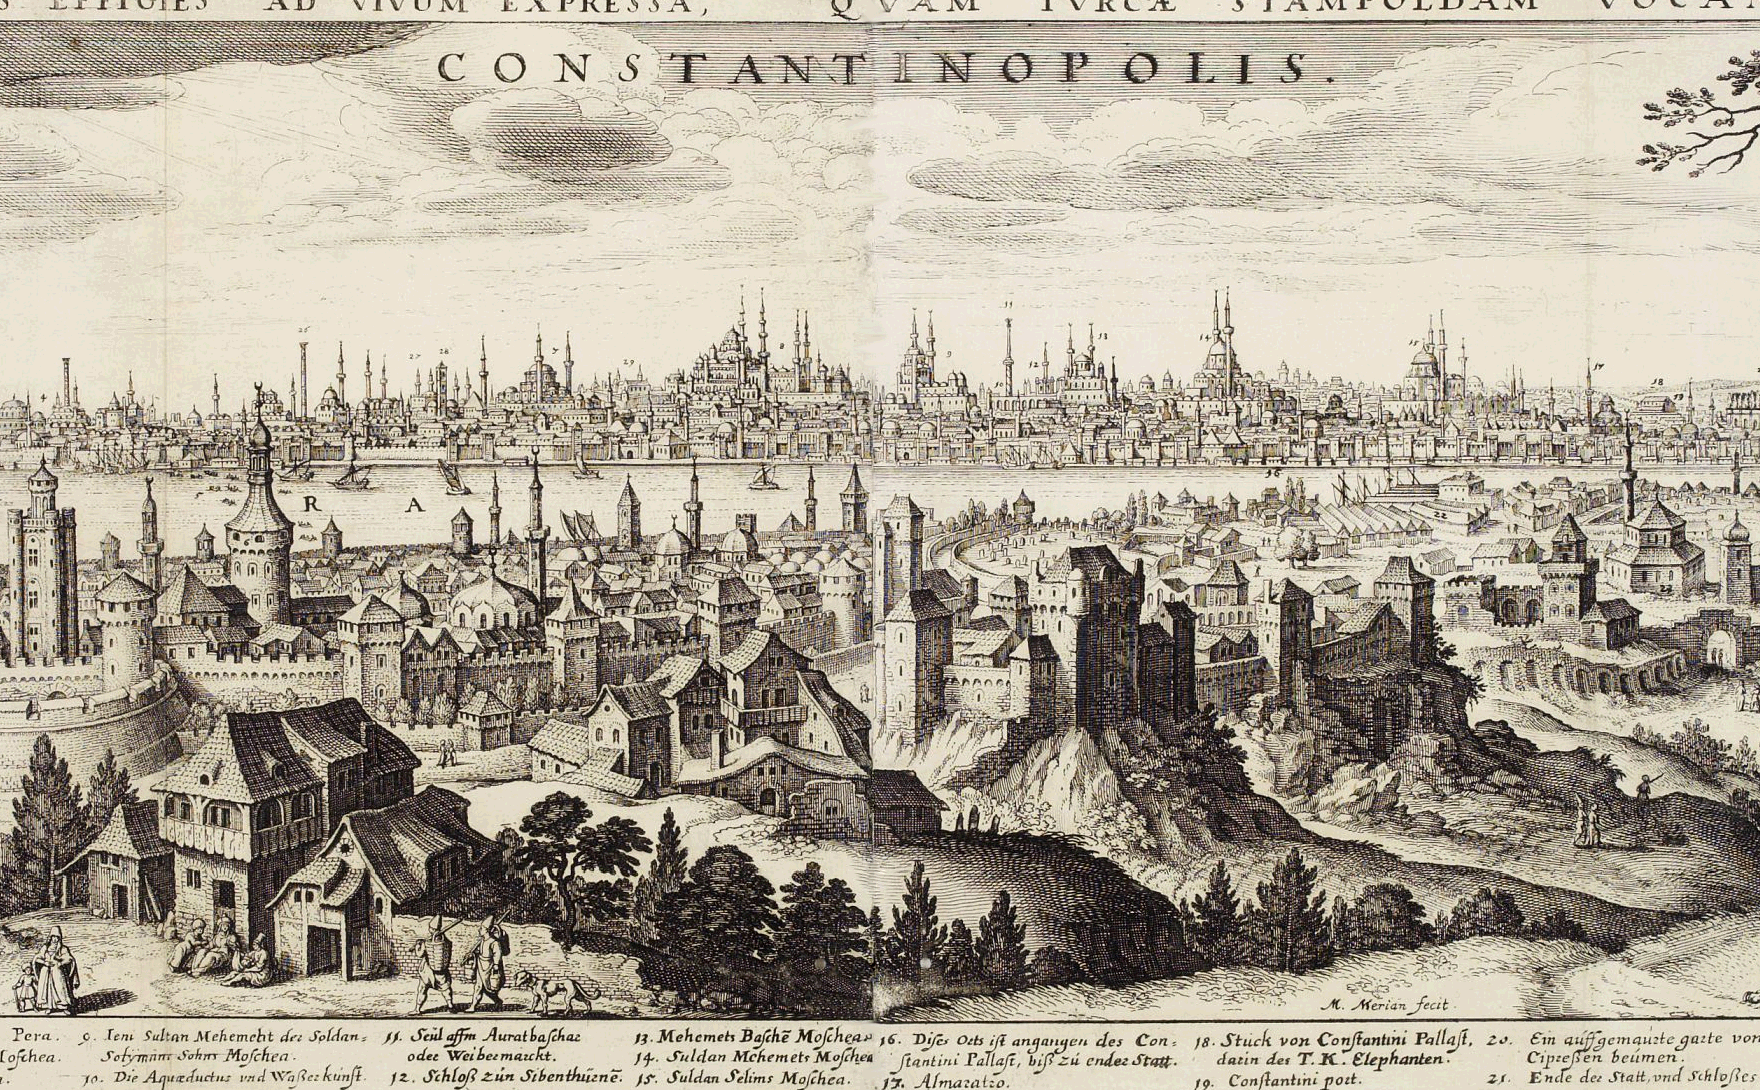 Constantinople in the 17th century.